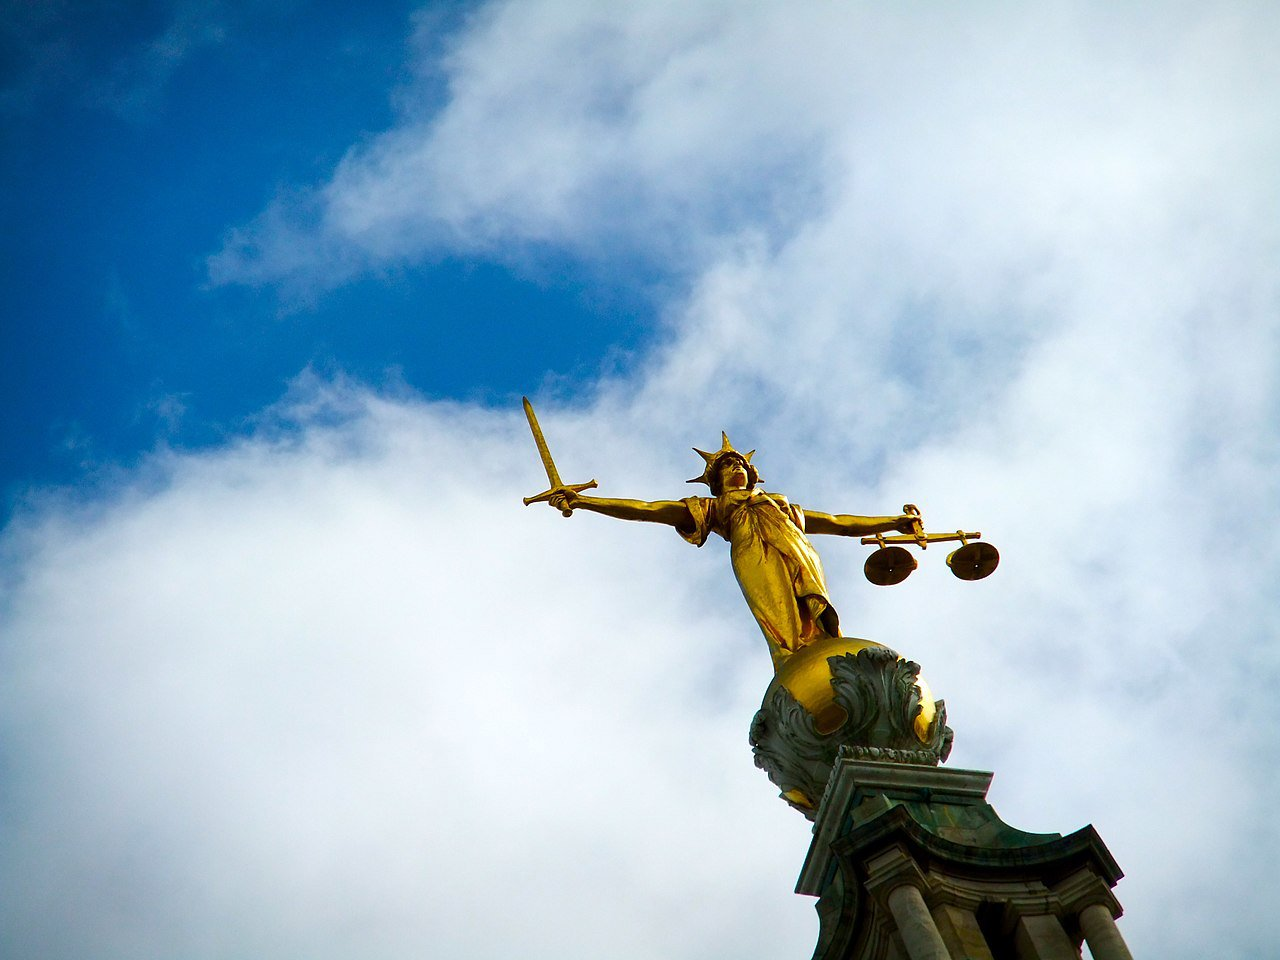 Justice statue atop the Old Bailey criminal court